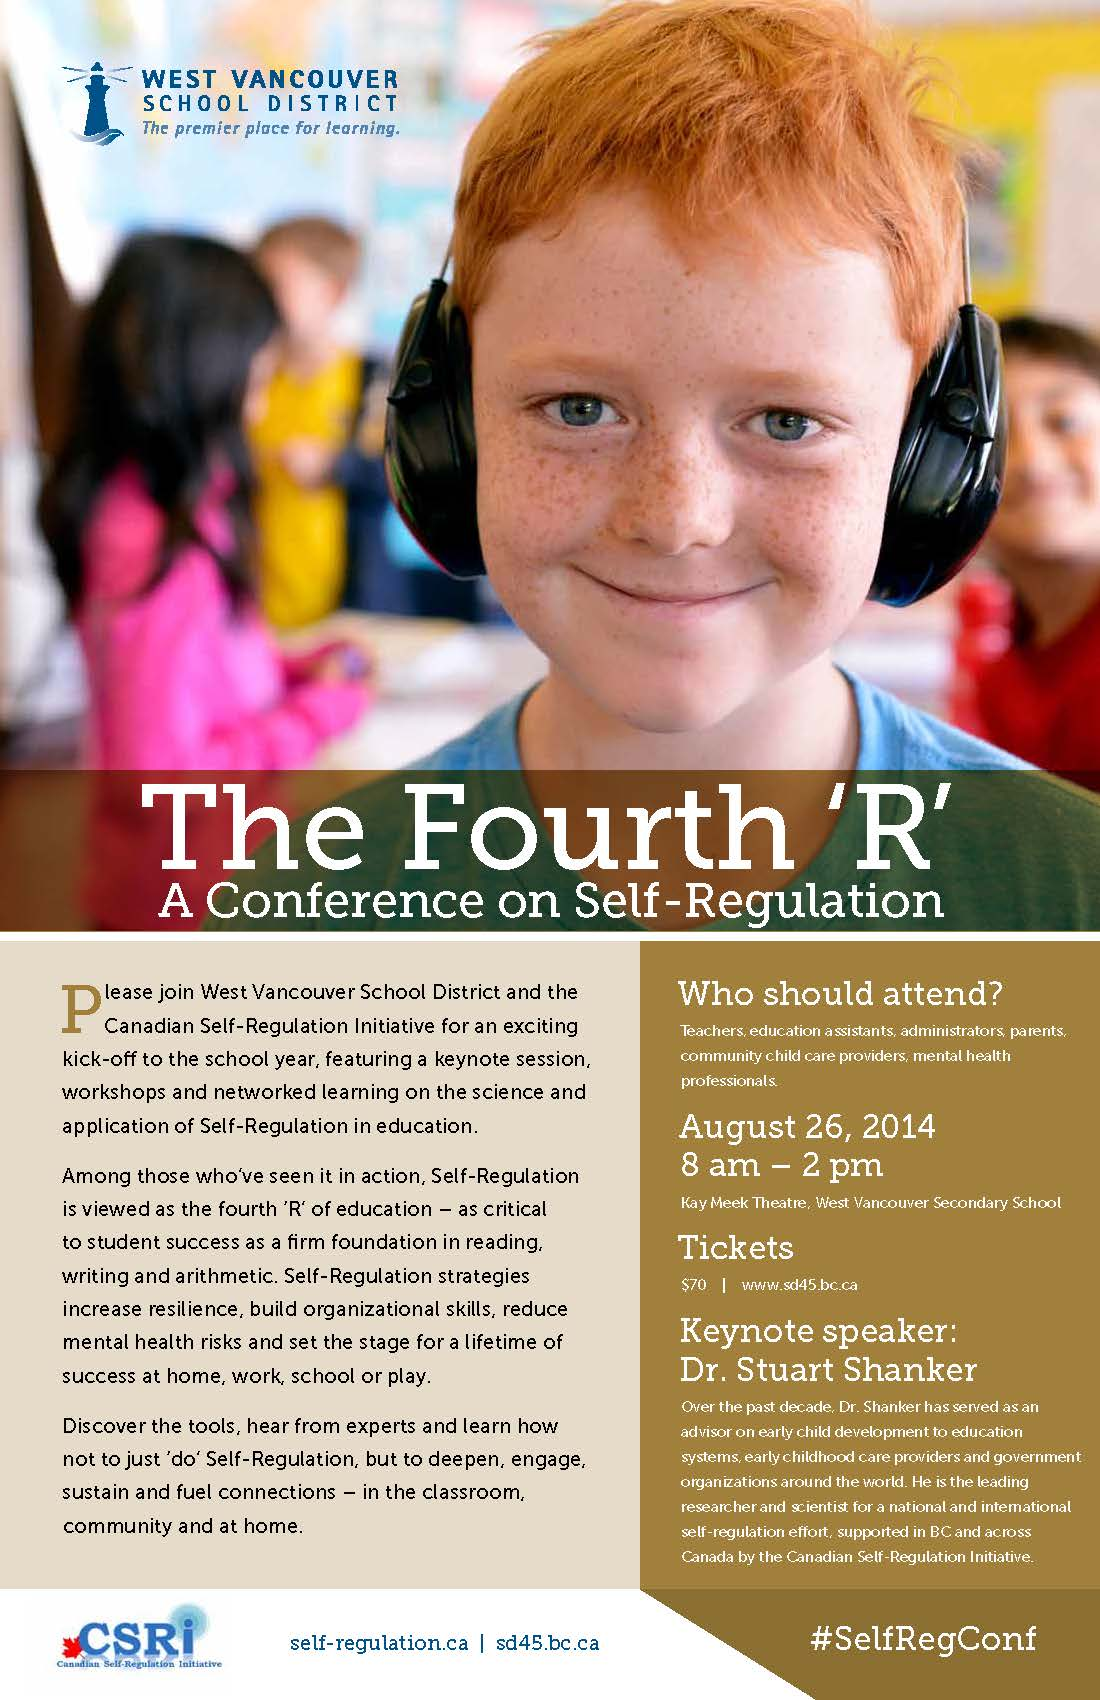 The Fourth R – A Conference on Self-Regulation at the Kay Meek Centre West Vancouver